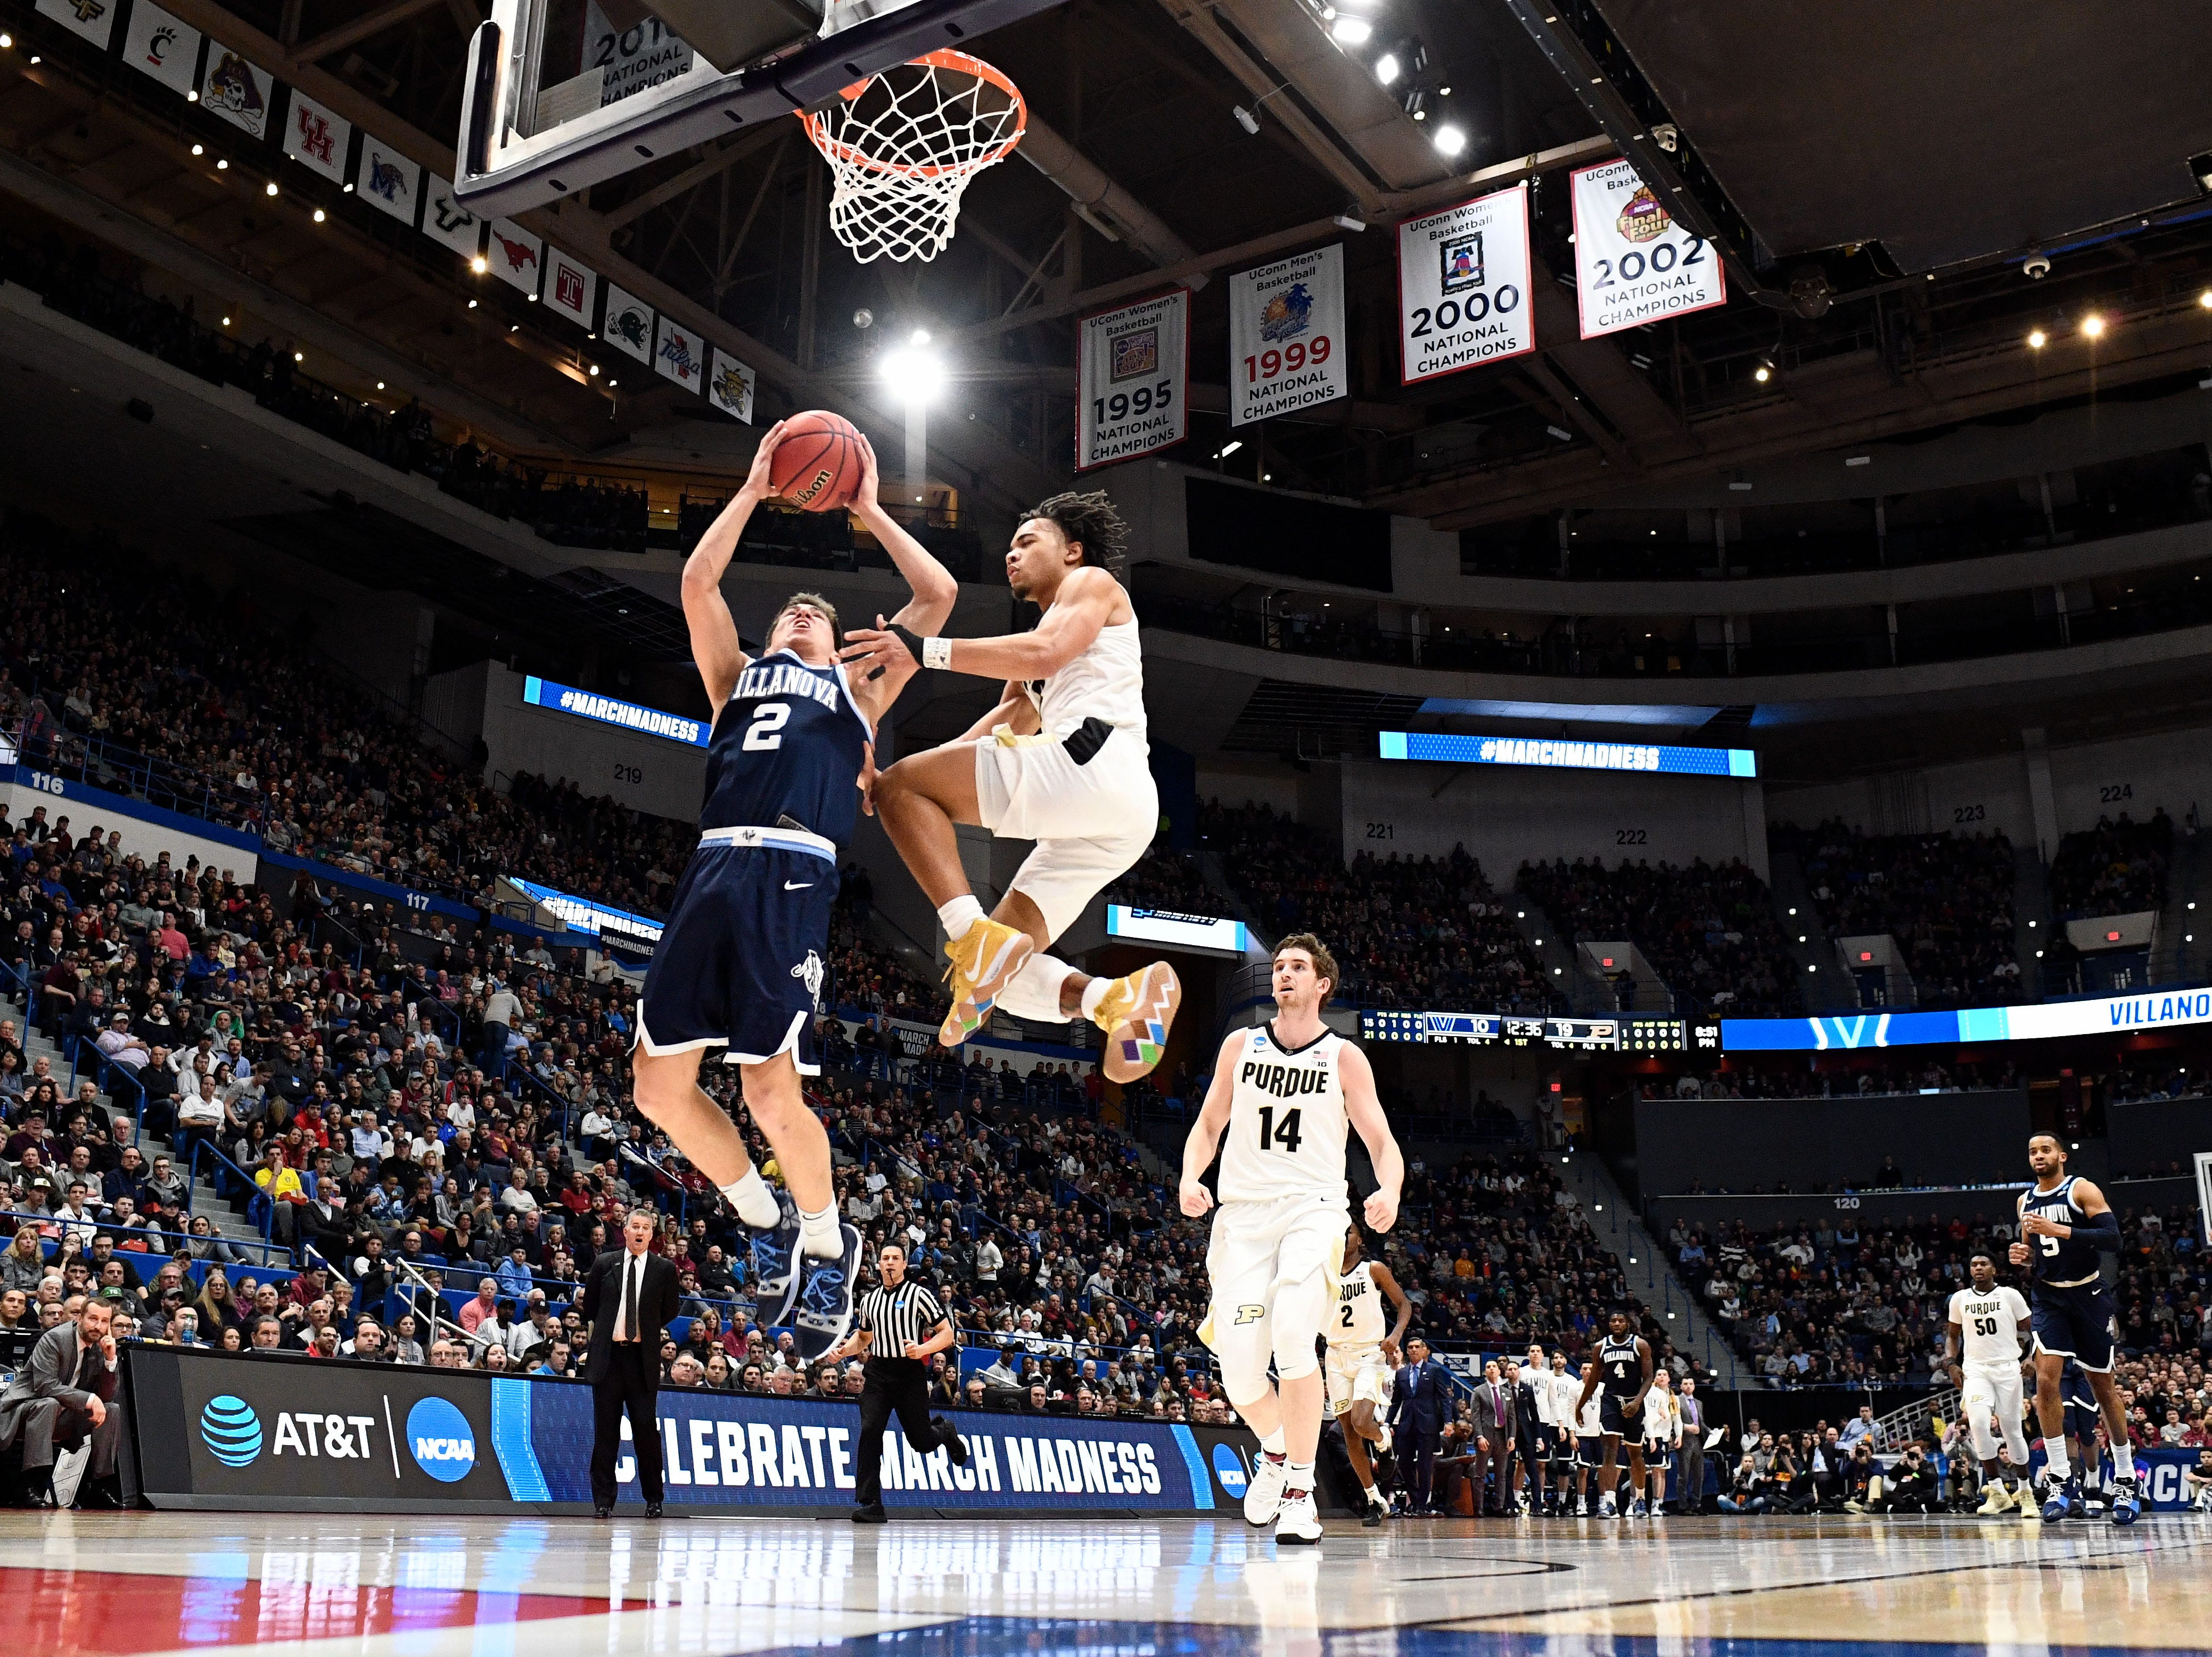 Mar 23, 2019; Hartford, CT, USA; Purdue Boilermakers guard Carsen Edwards (3) defends a layup by Villanova Wildcats guard Collin Gillespie (2) during the first half of game in the second round of the 2019 NCAA Tournament at XL Center. Mandatory Credit: Robert Deutsch-USA TODAY Sports